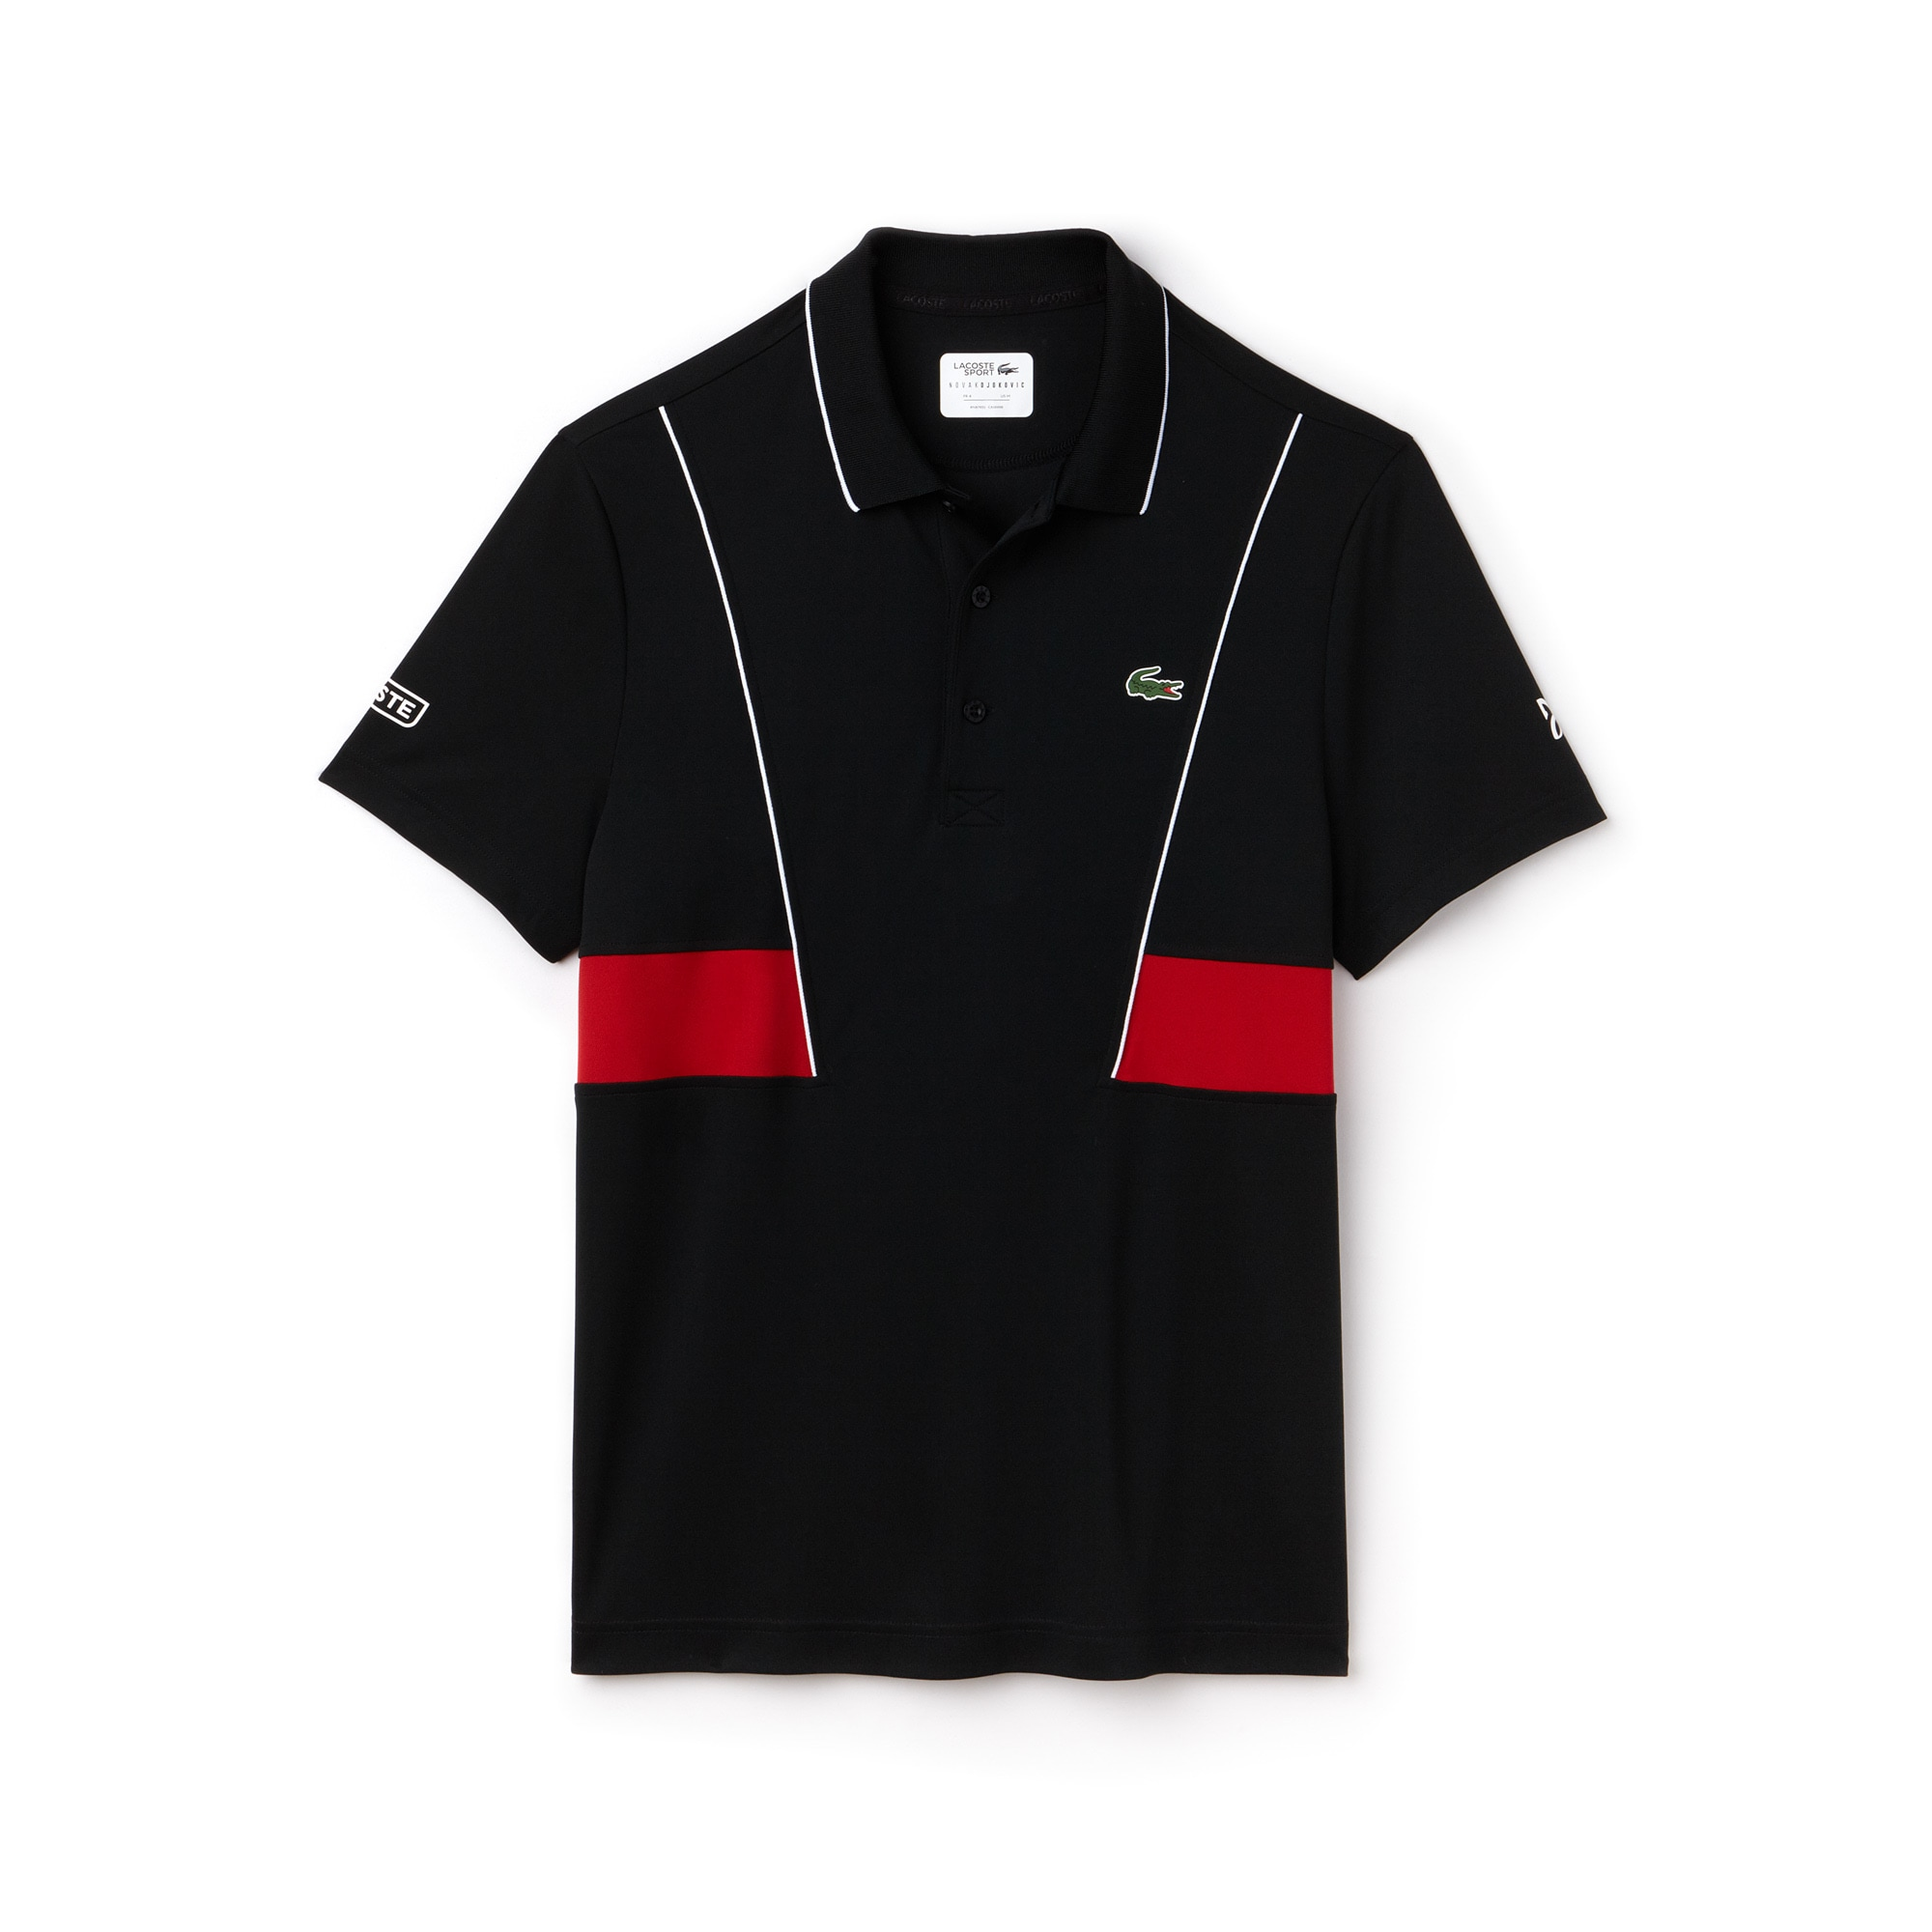 Men's LACOSTE SPORT NOVAK DJOKOVIC COLLECTION Tech Piqué Polo Shirt